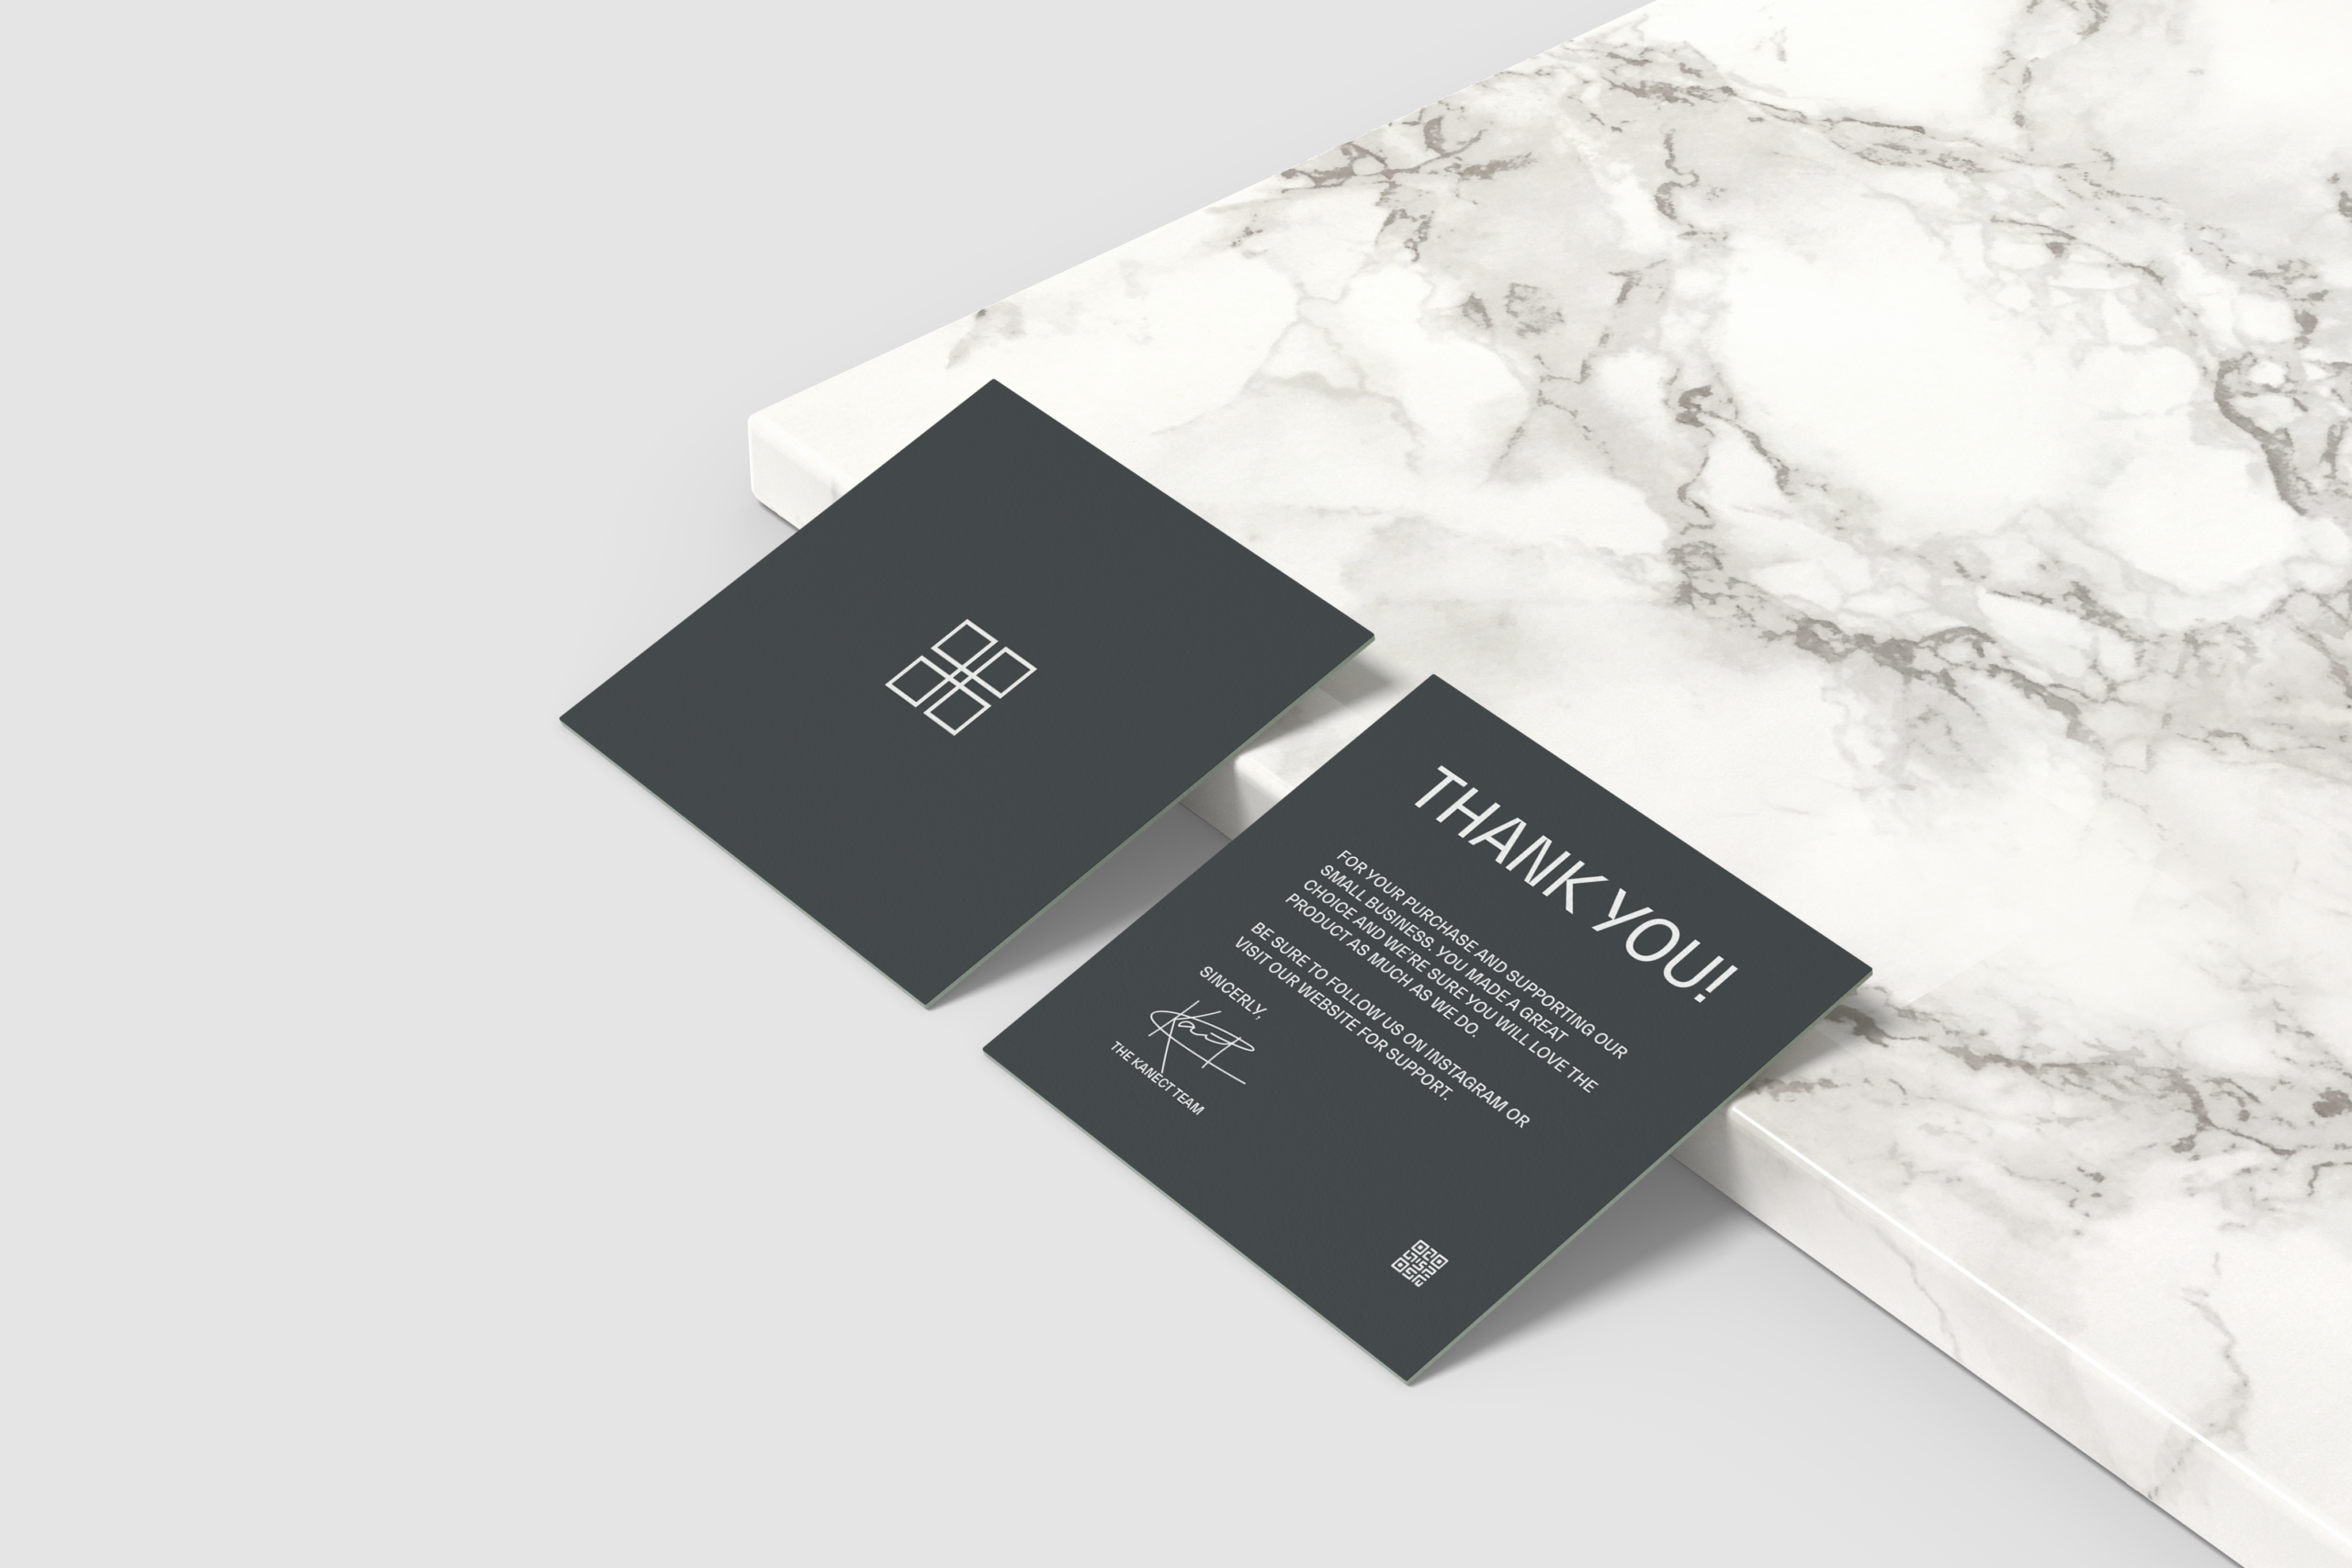 Thank You Card (Black) designed by Ace Digital for Kanect Clothing